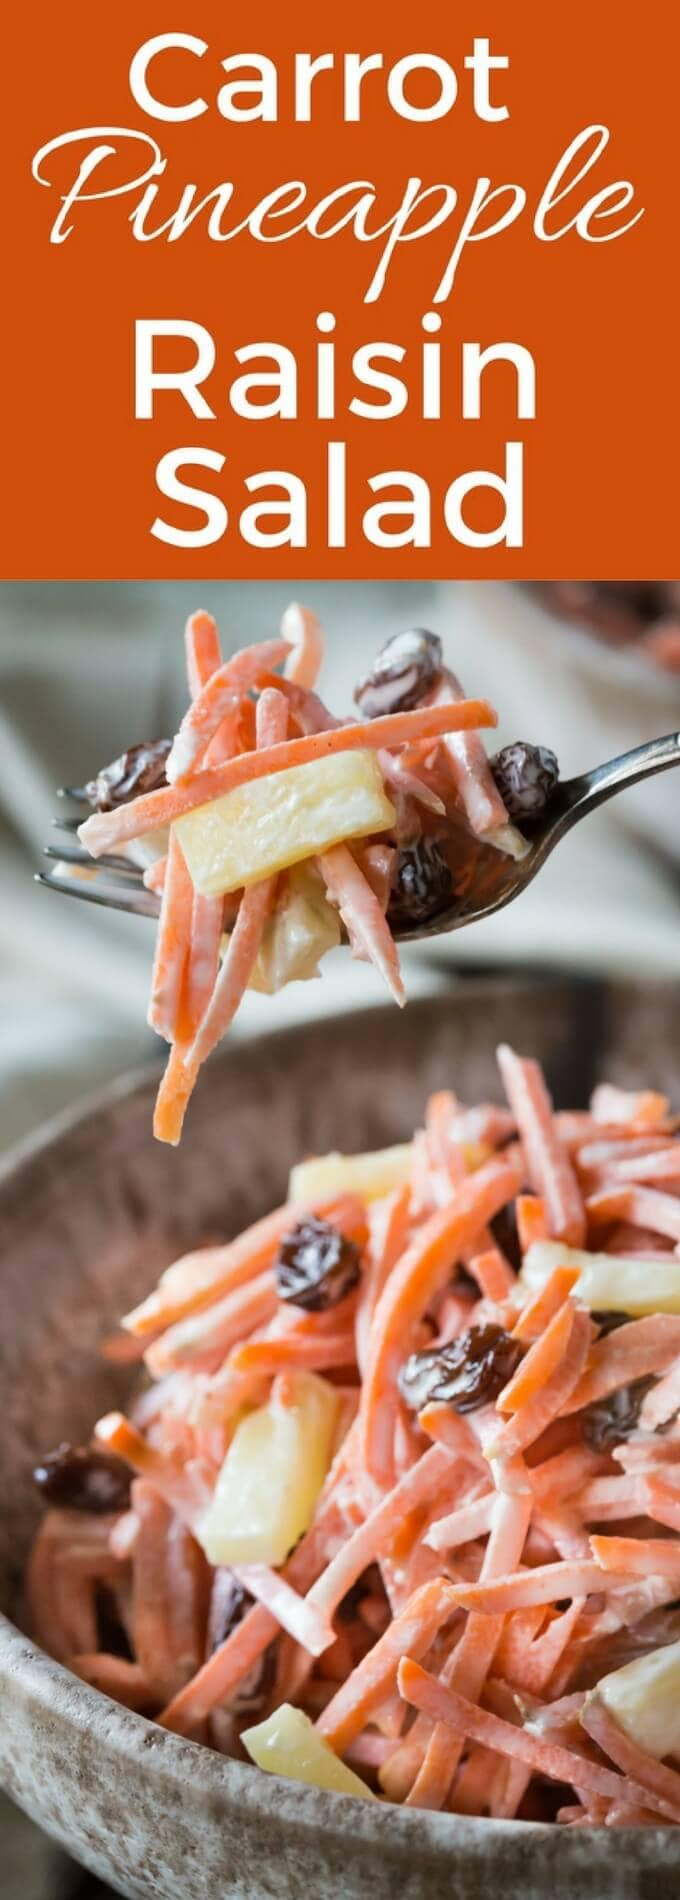 Healthy 5 Minute Carrot Raisin Pineapple Salad! It's vegetarian, make it vegan with a mayonnaise substitute. gluten free, dairy free!